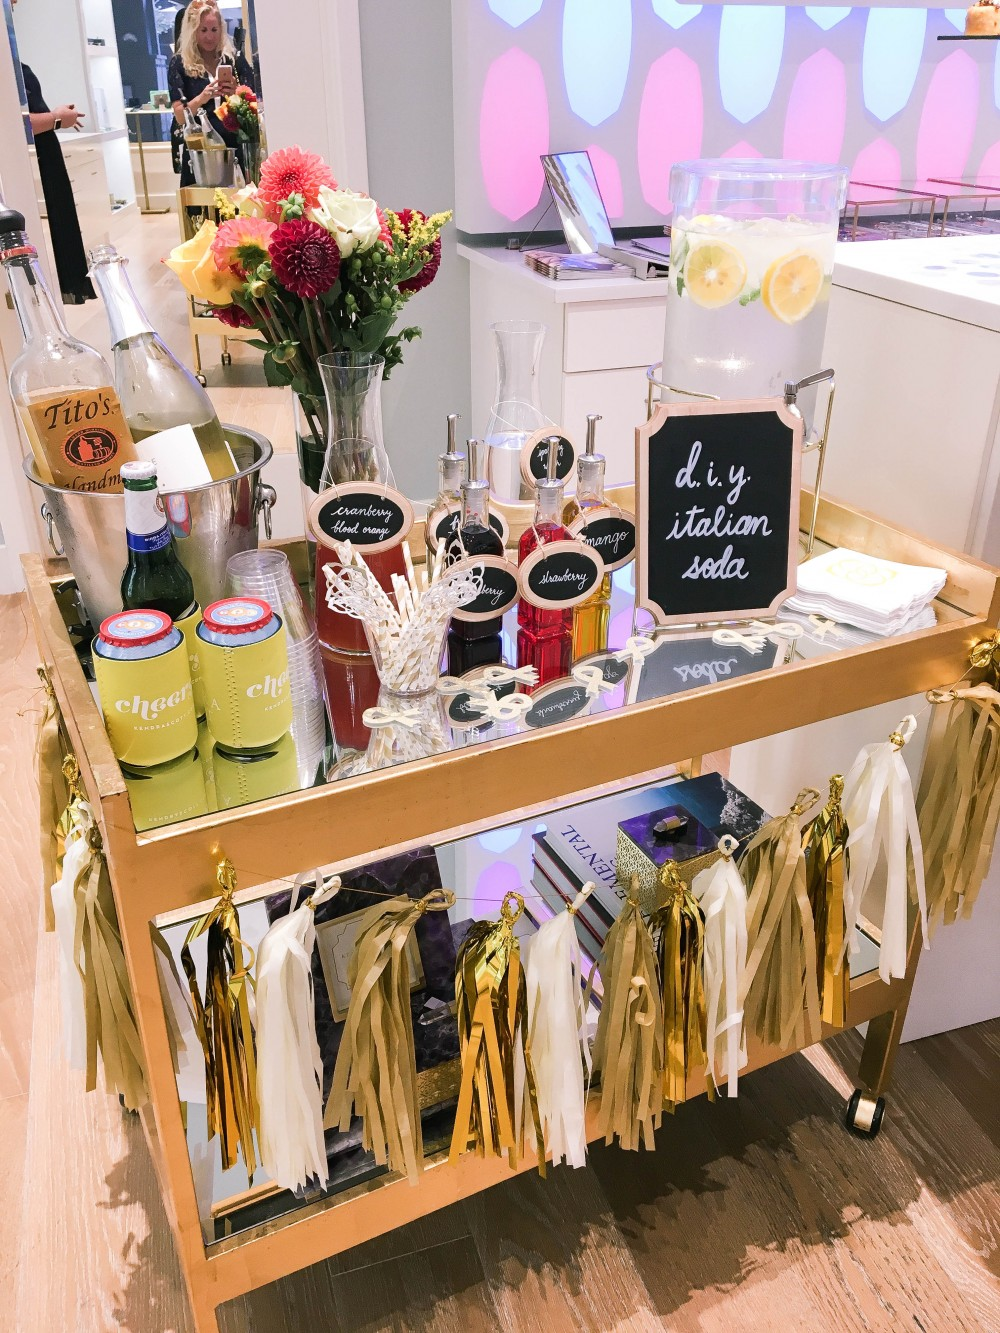 Kendra Scott Fall 2017 Launch Party-Kendra Scott Fall 2017 Collection-Whisk Away to Florence-Inspired by Italy-Bay Area Events-Santana Row-Have Need Want